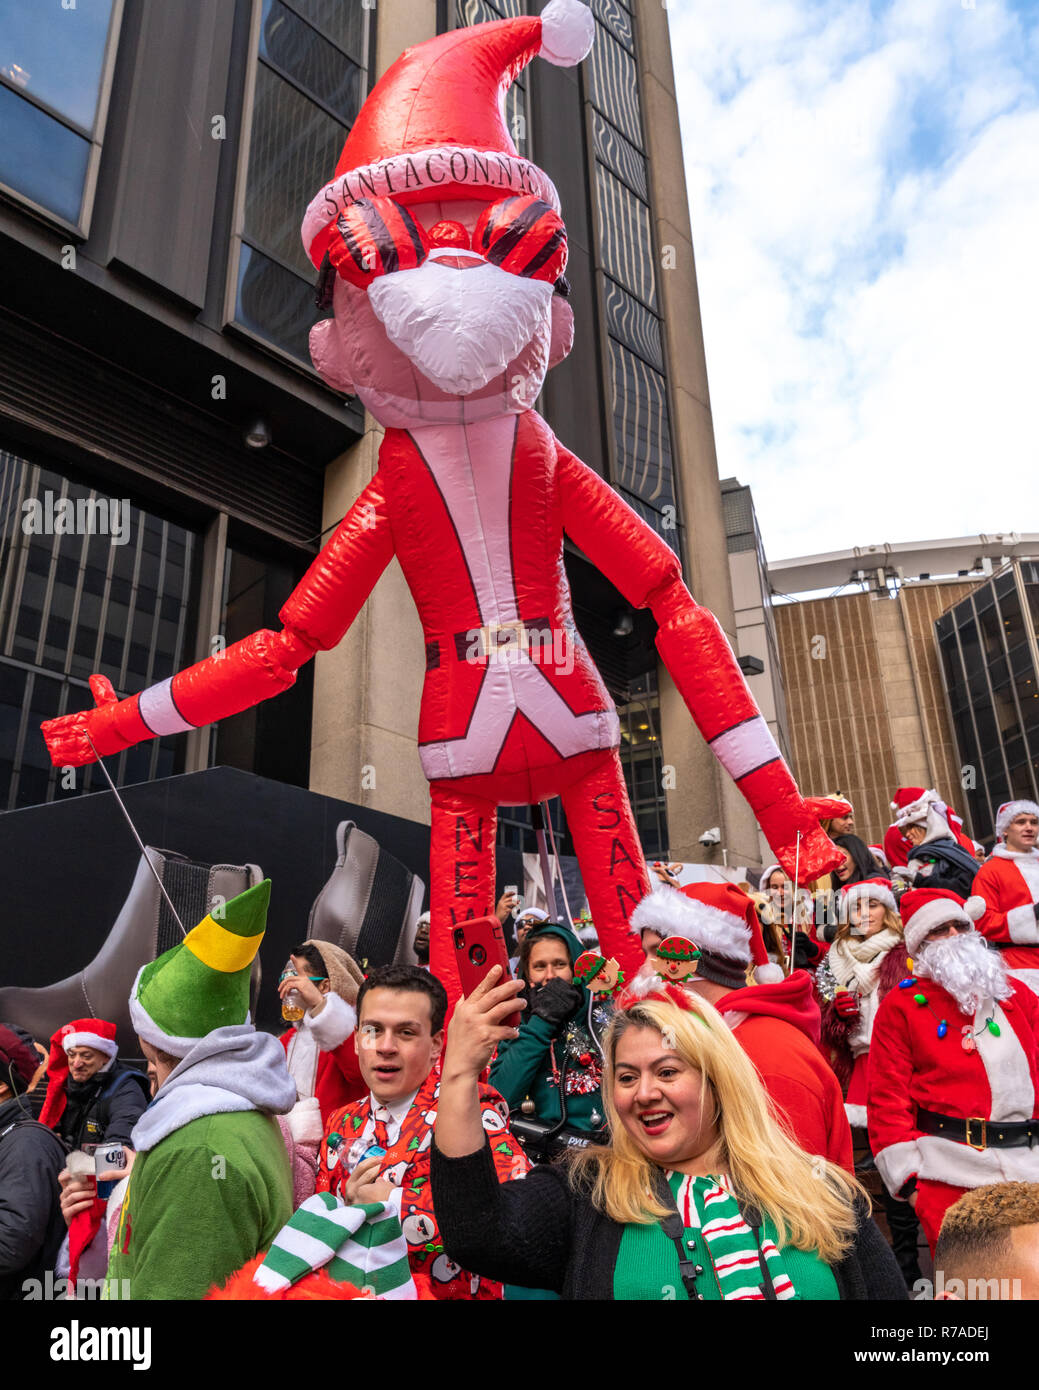 New York, USA, 8th December 2018. Revelers dressed as Santa Claus have fun during the annual SantaCon in New York City. Credit: Enrique Shore/Alamy Live News Stock Photo